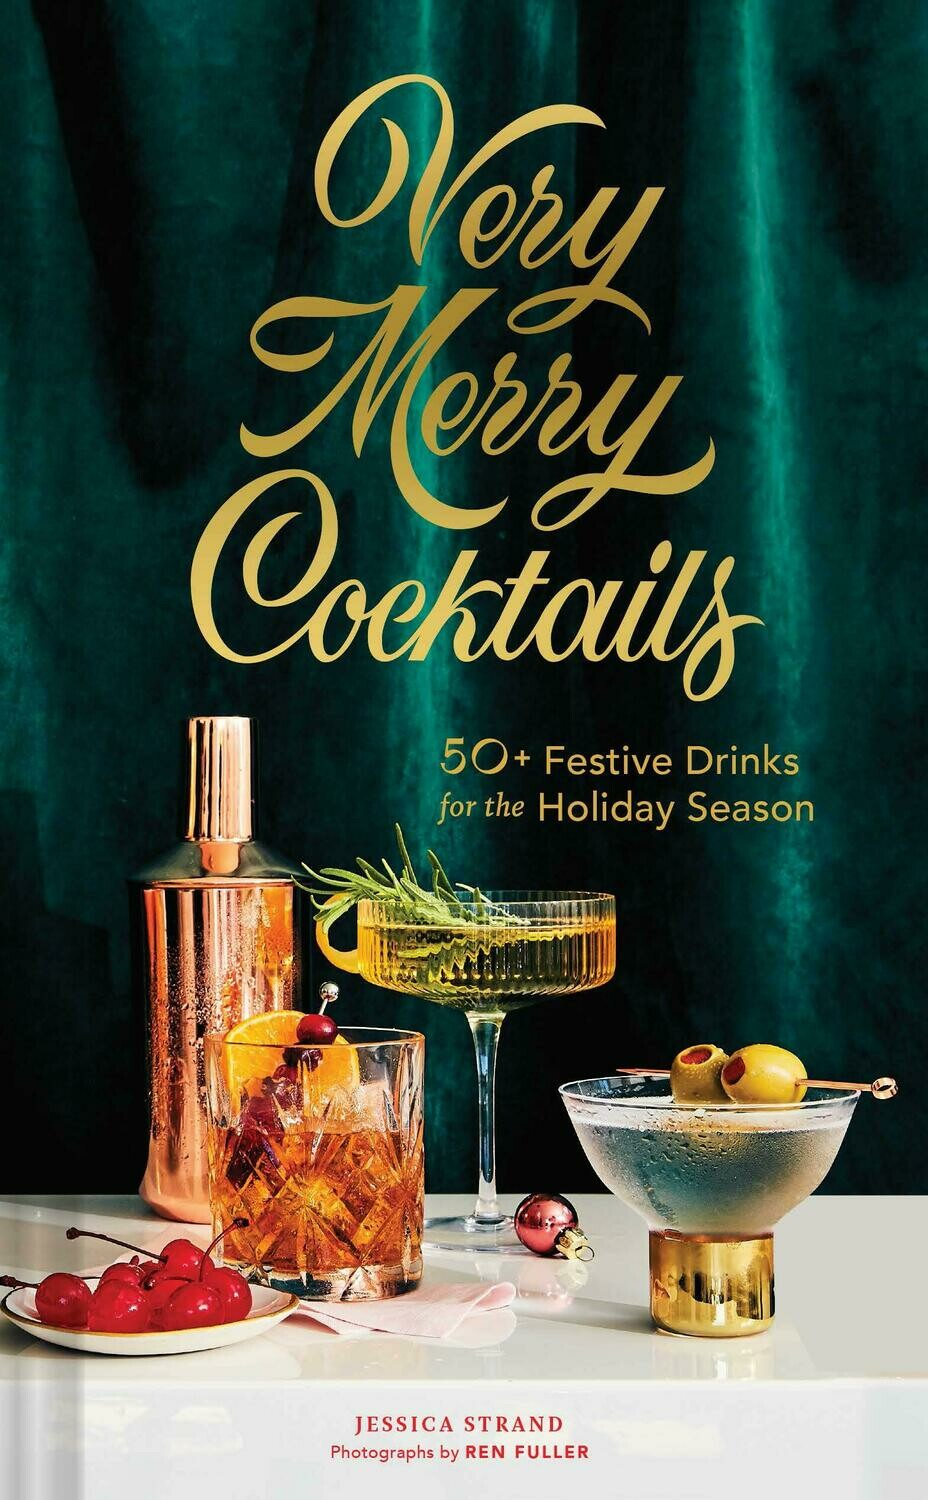 Very Merry Cocktail Book